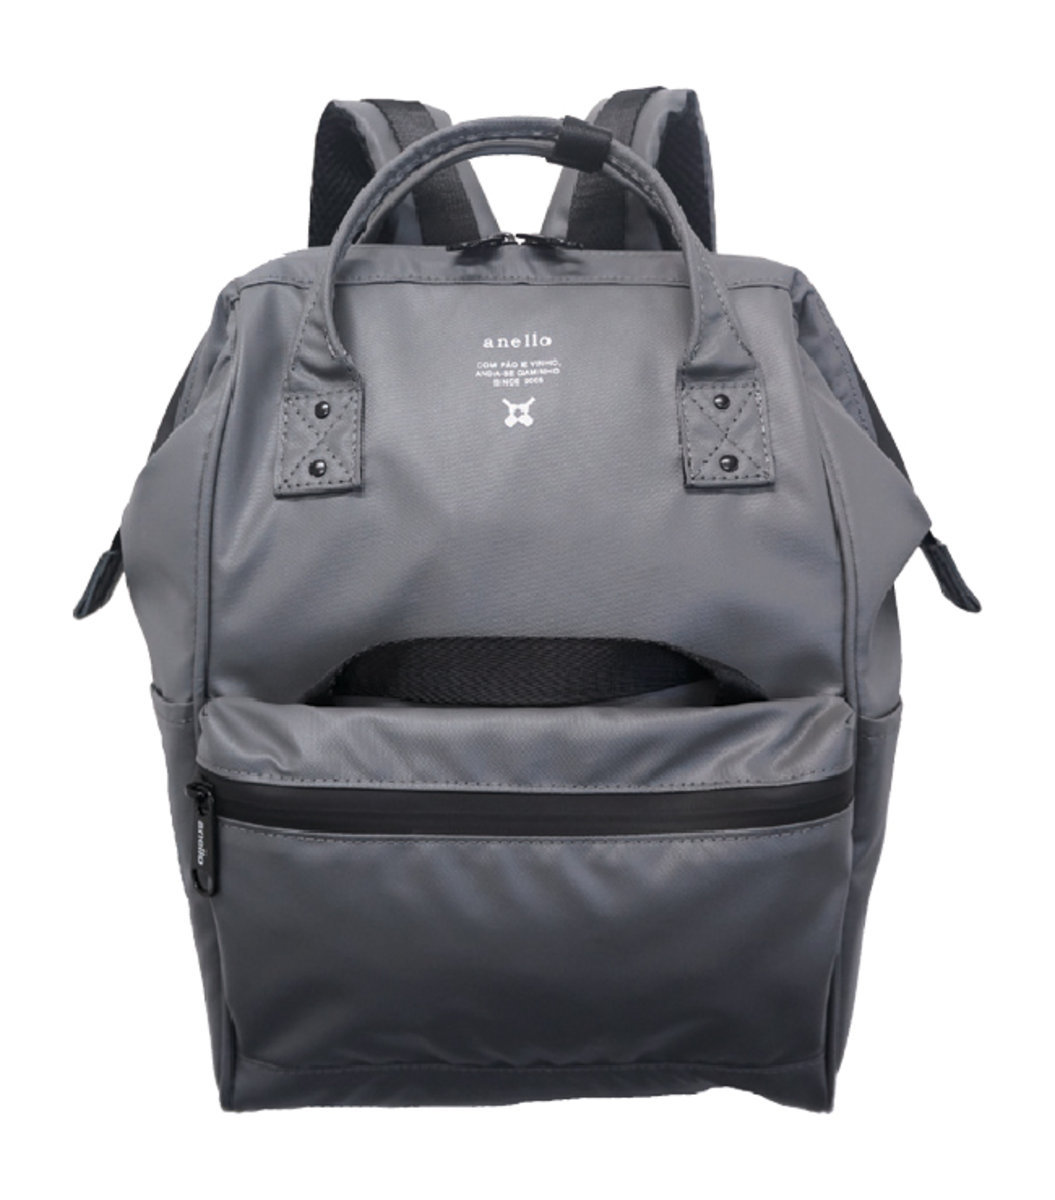 L-SIZE Oversea Limited Edition Waterproof Backpack OS-B001 GREY c393eeb87d662